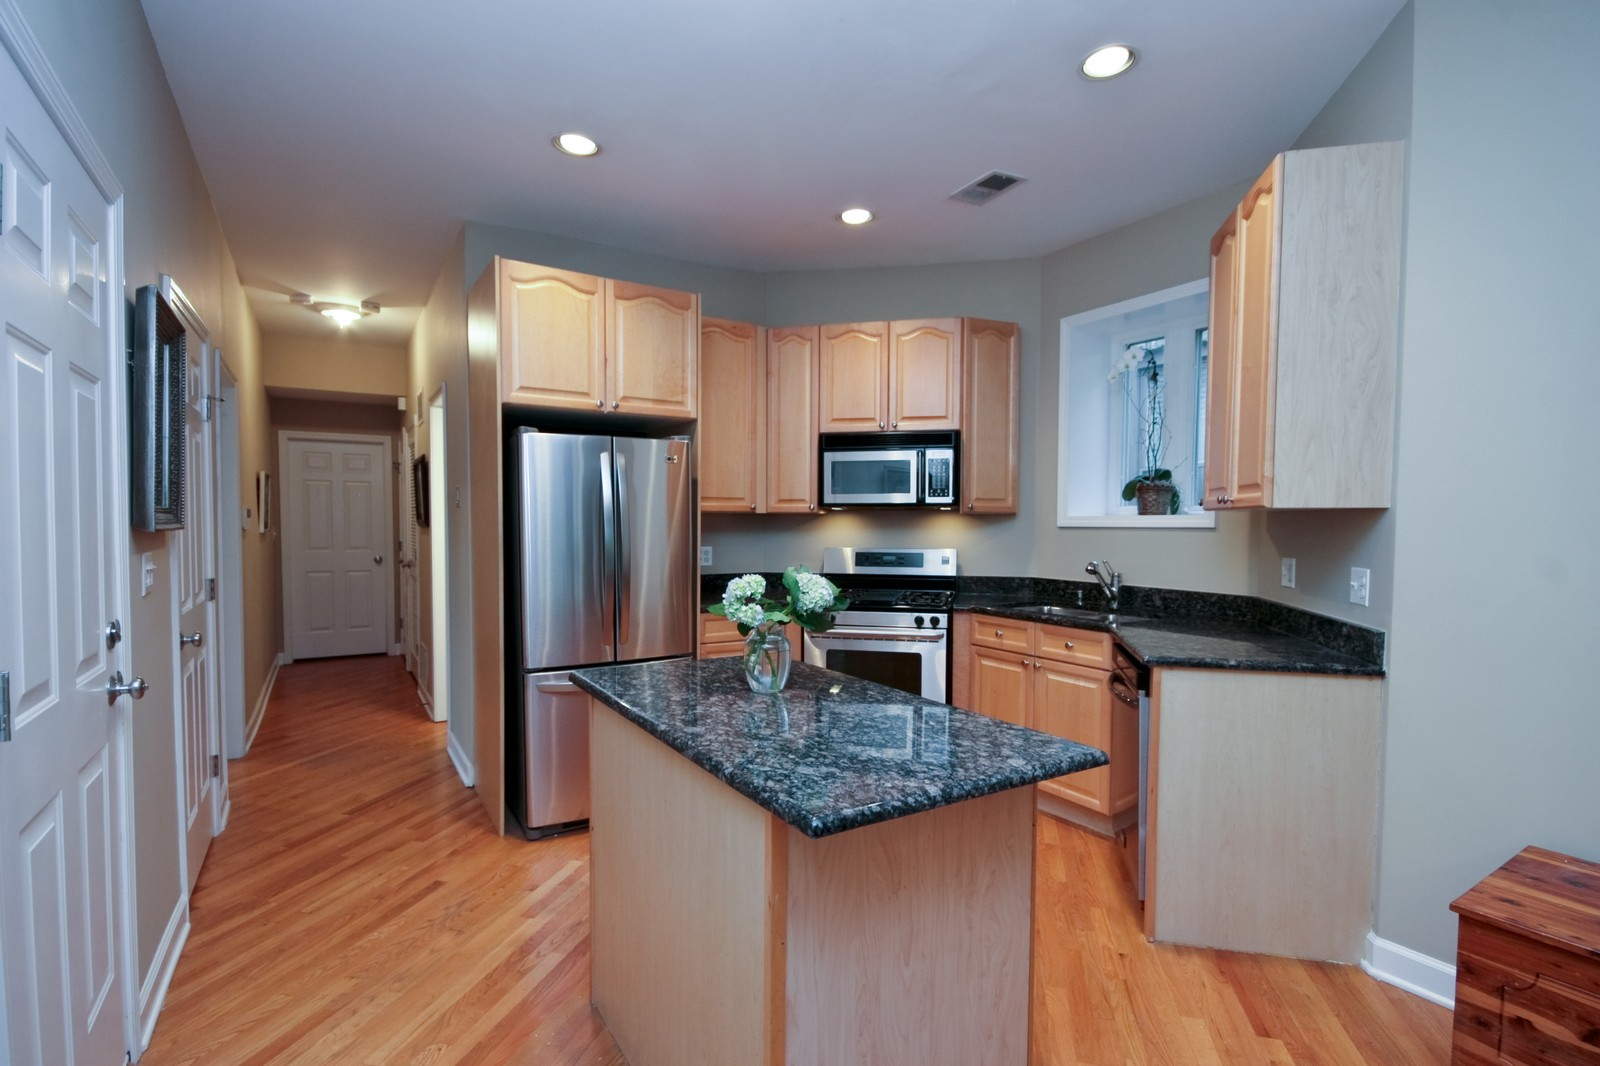 Real Estate Photography - 3705 N Paulina, Unit 3, Chicago, IL, 60613 - Kitchen - Granite island & countertops, stainless